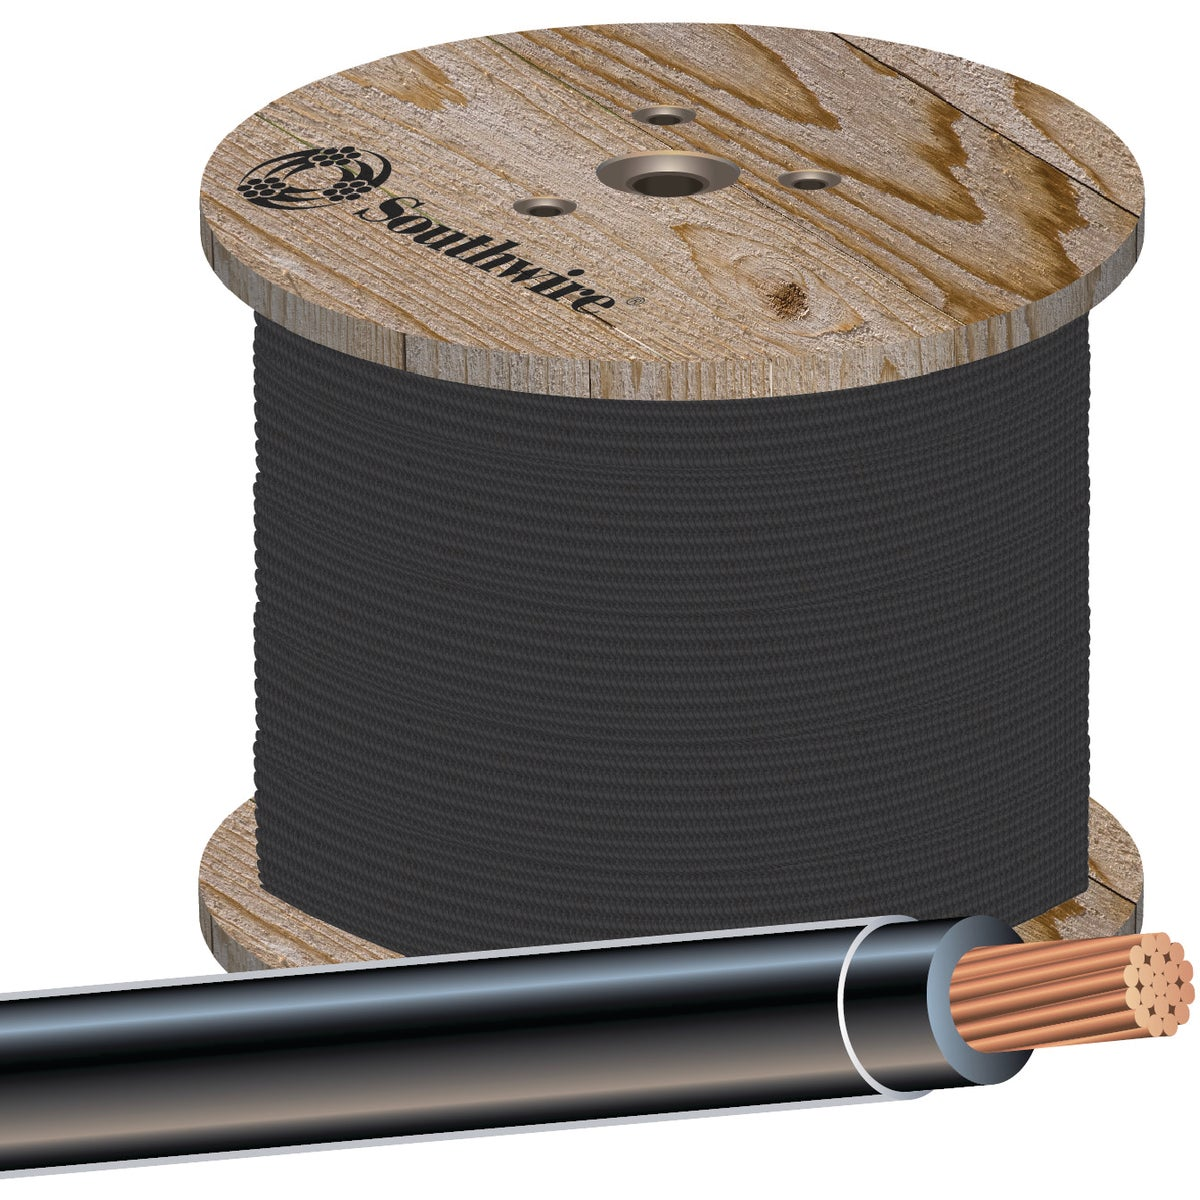 500' 2/0 BLK THHN WIRE - 20506202 by Southwire Company